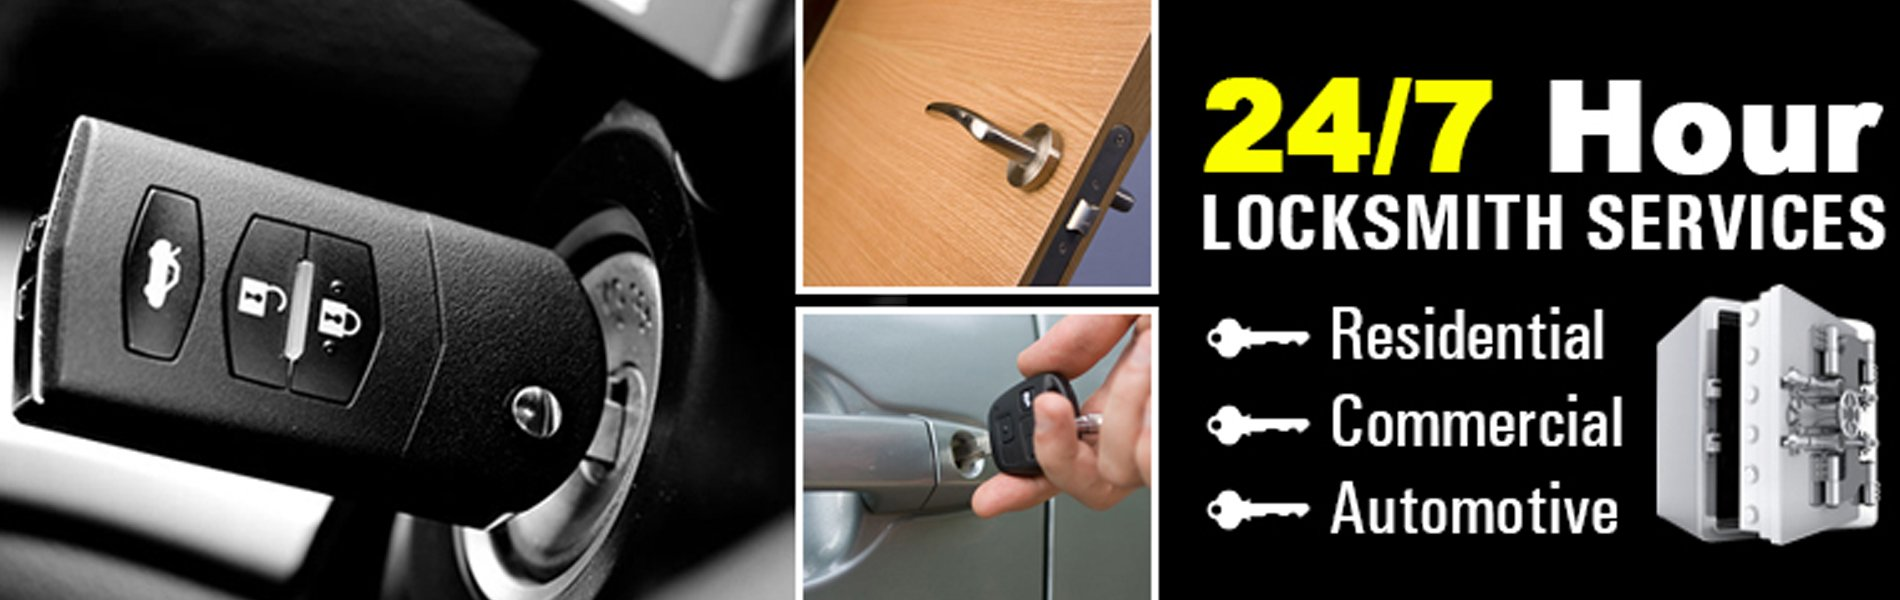 Rosebank TN Locksmith Store, Rosebank, TN 615-608-3089